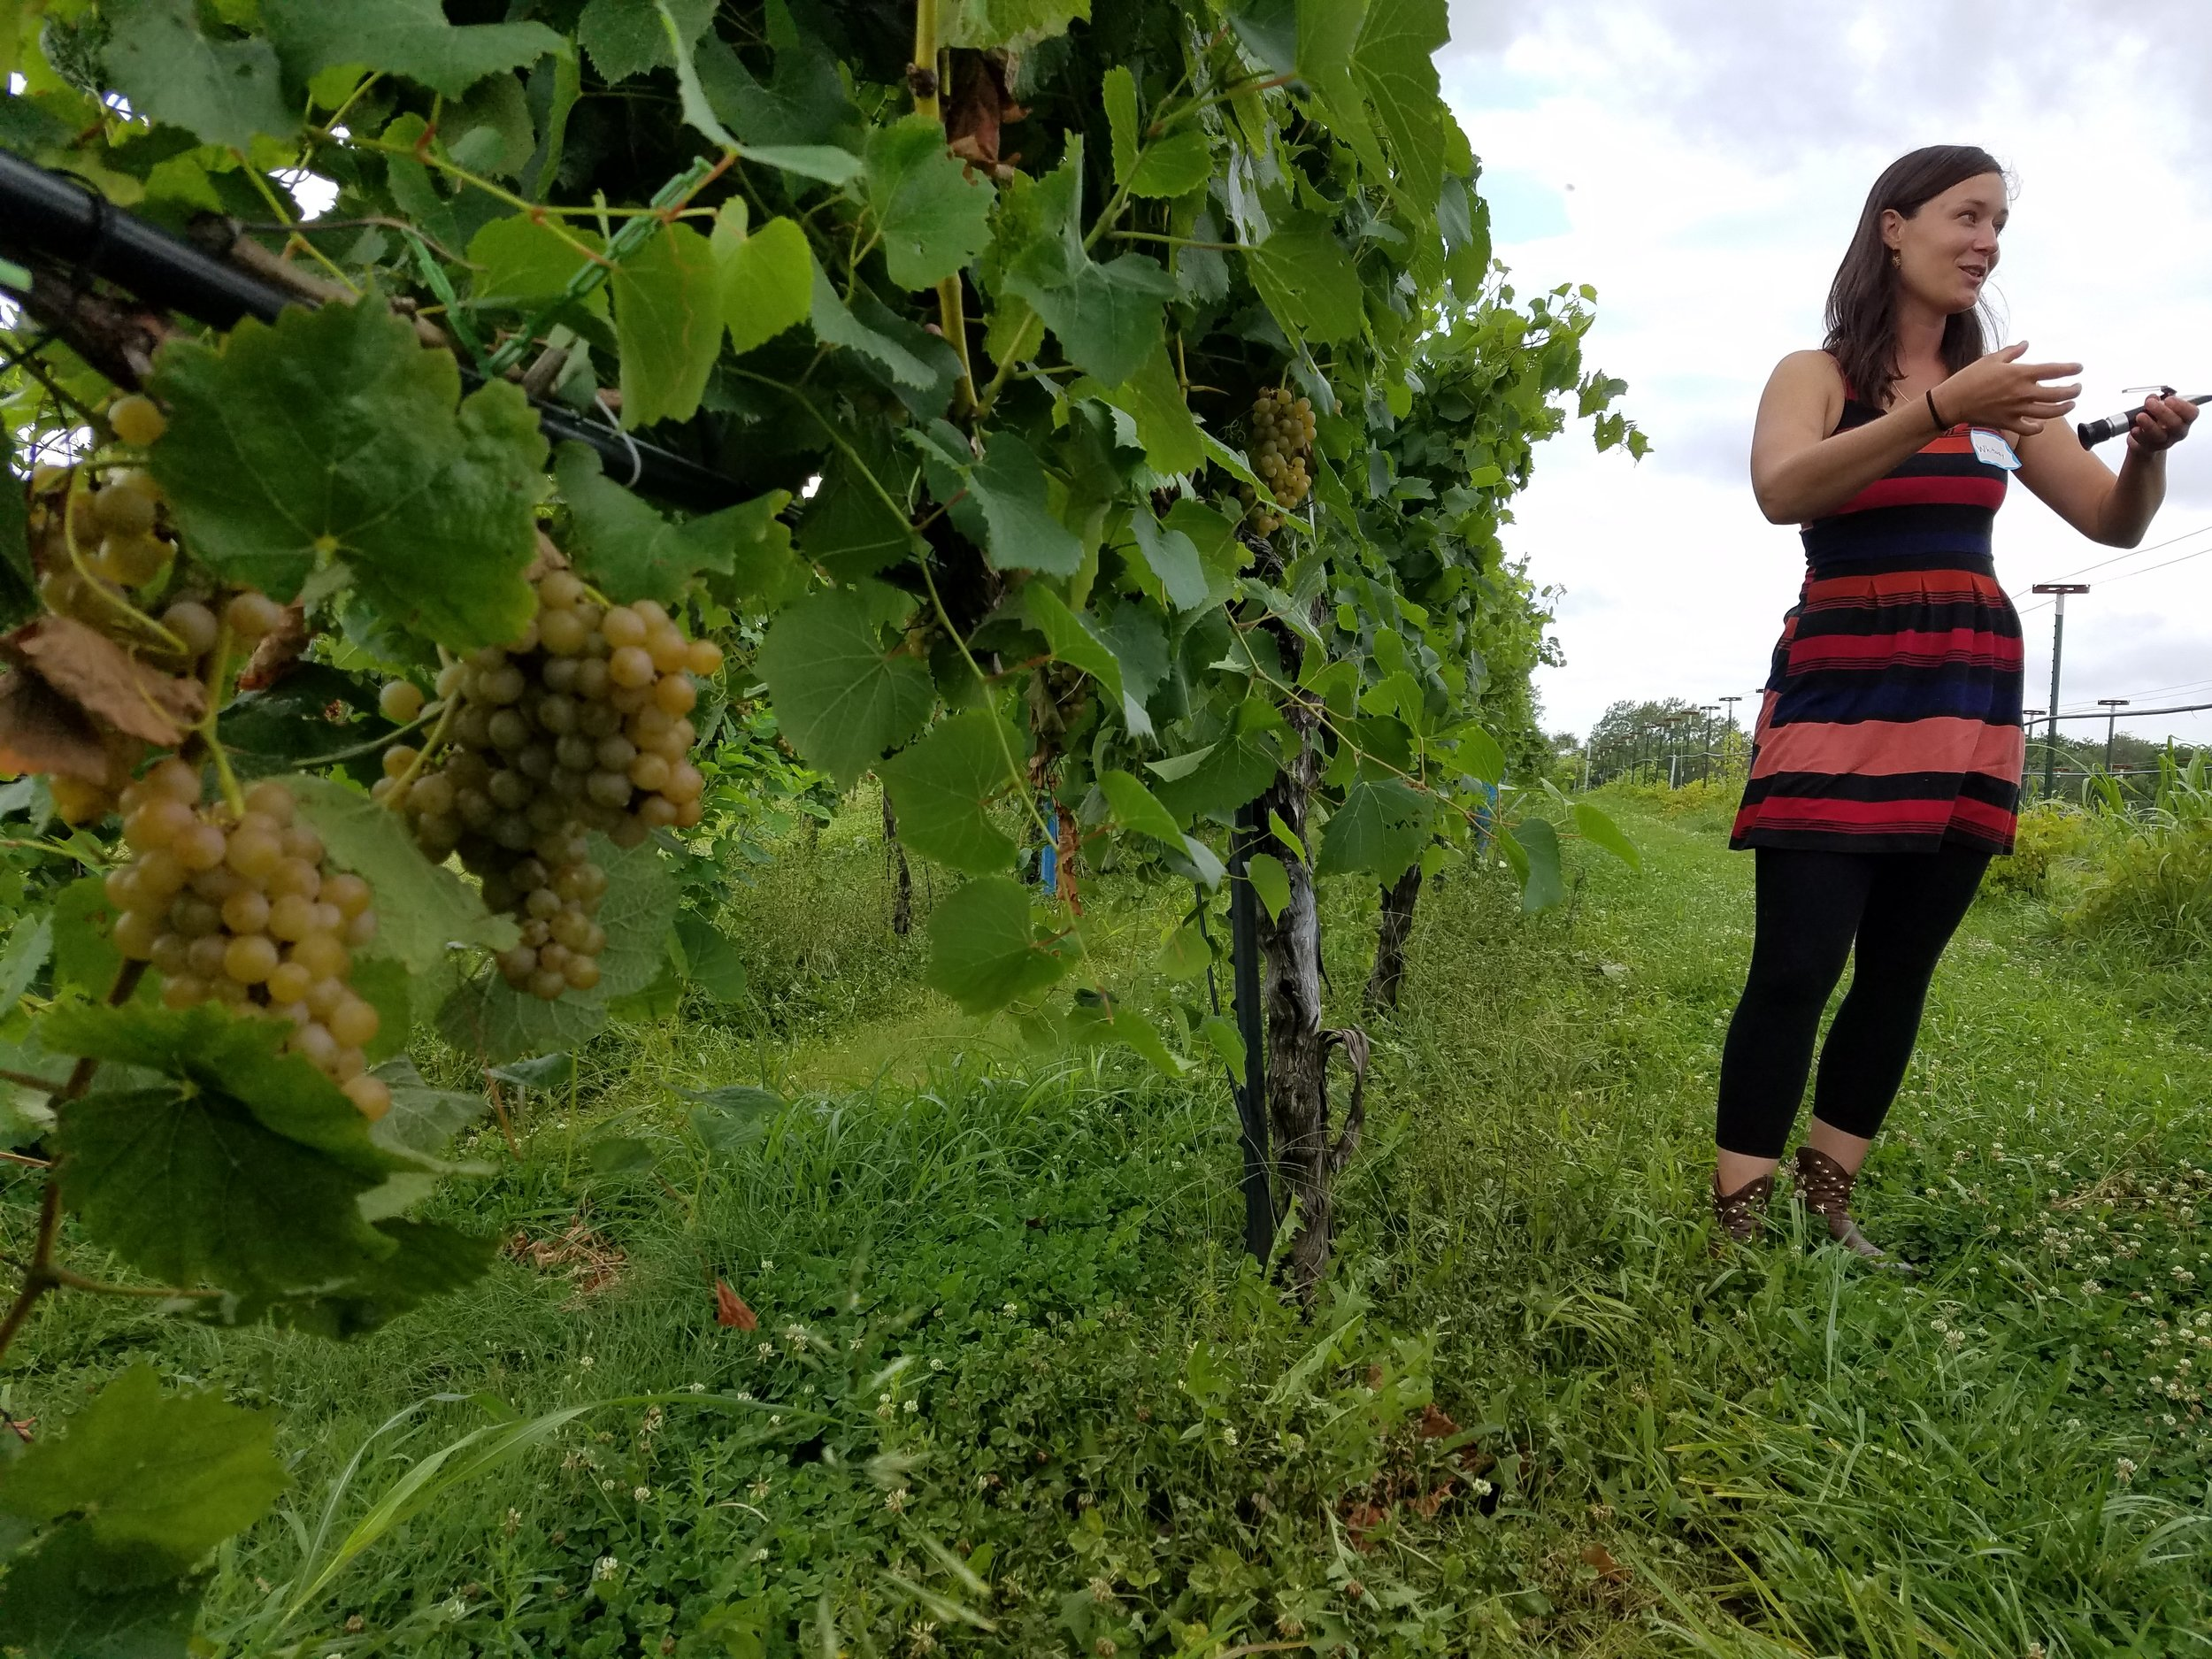 Whitney Ryan, Vox Vineyard's winemaker, leads a tour through the vines on the morning of eclipse day.